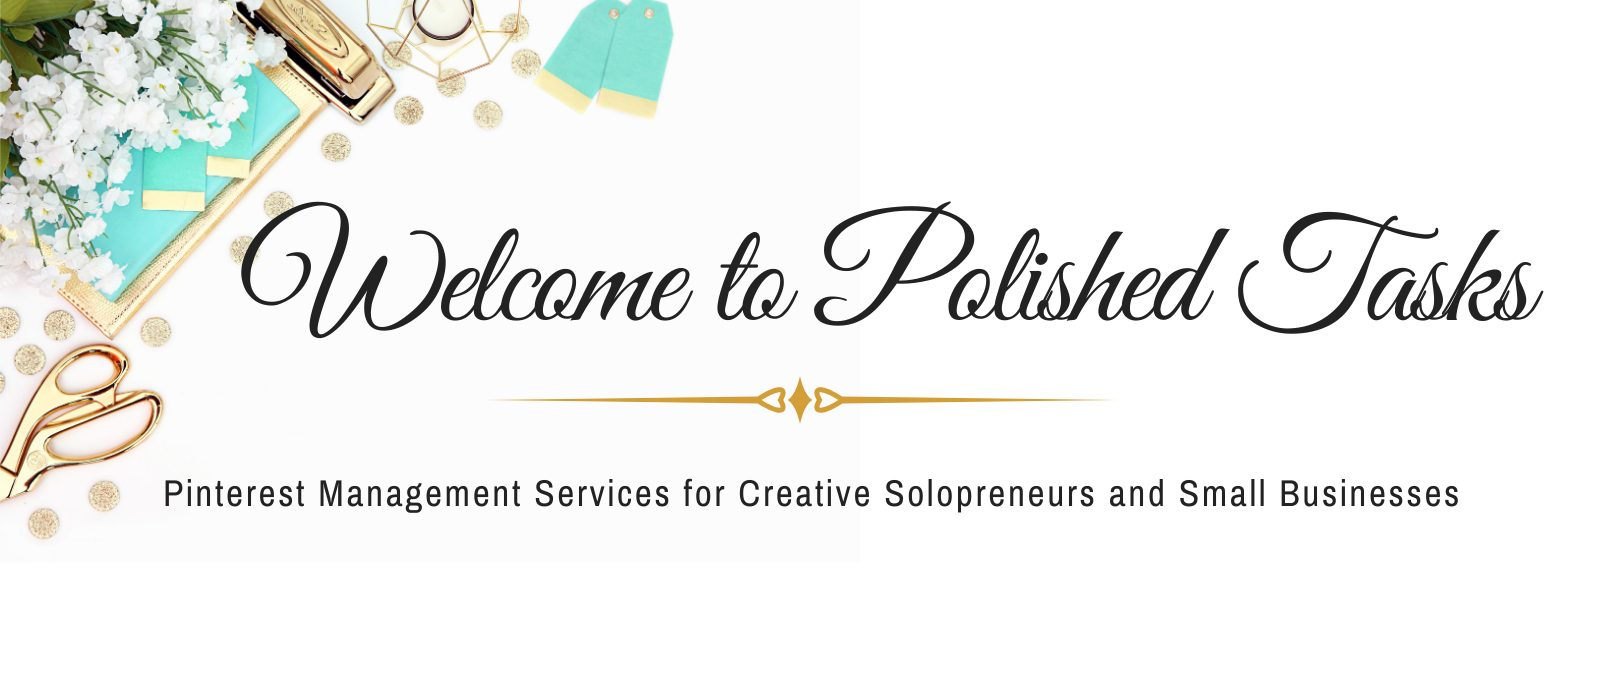 Polished Tasks Pinterest Management Services for Creative Solopreneurs and Small Businesses